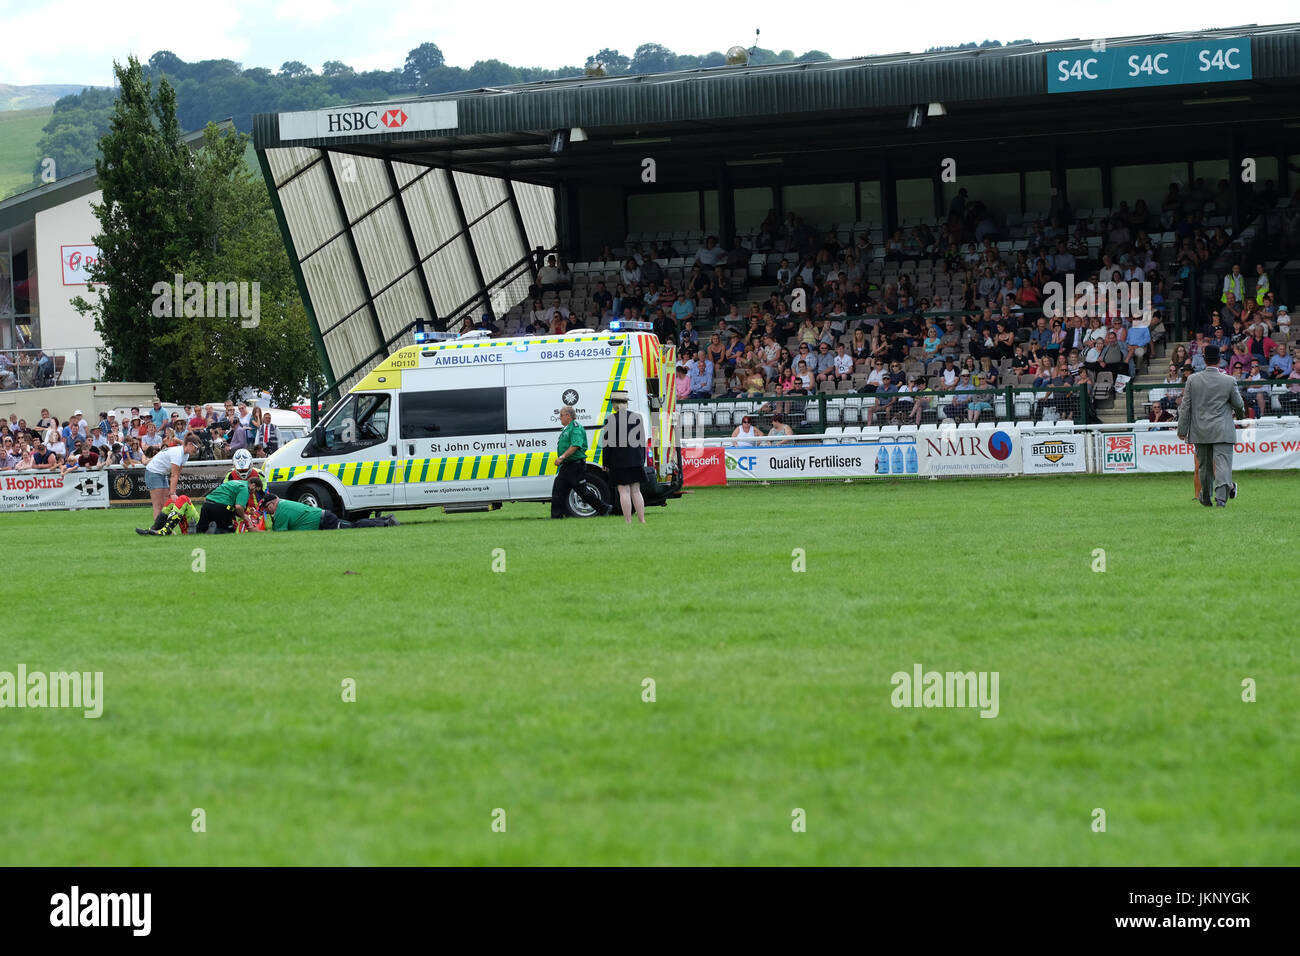 Royal Welsh Show - Monday 24th July 2017 - The Kangaroo Kid motorcycle stuntman is treated by ambulance staff after - Stock Image